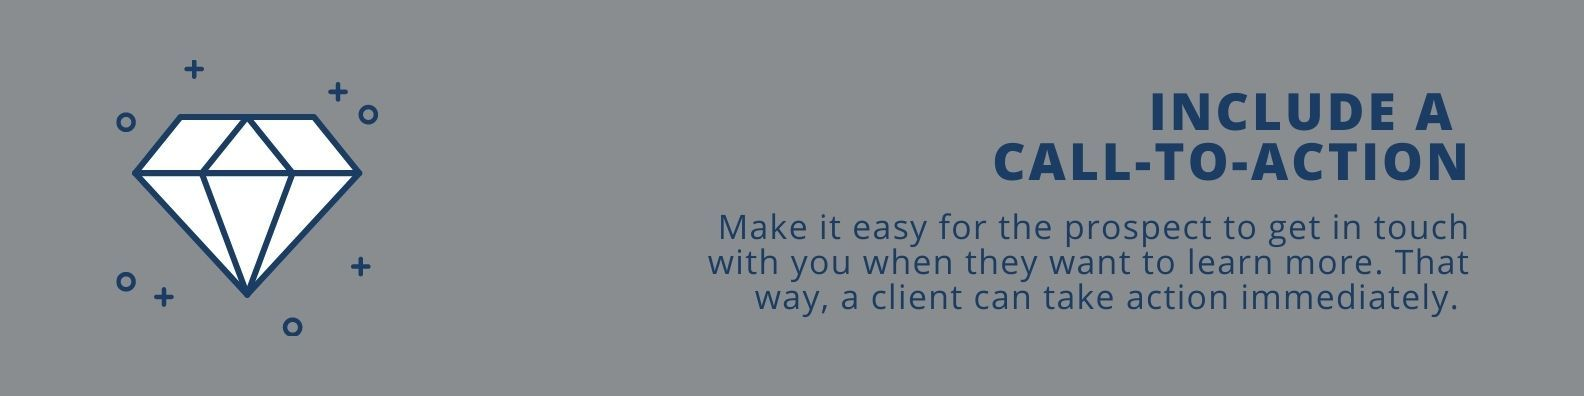 Include a Call-to-Action